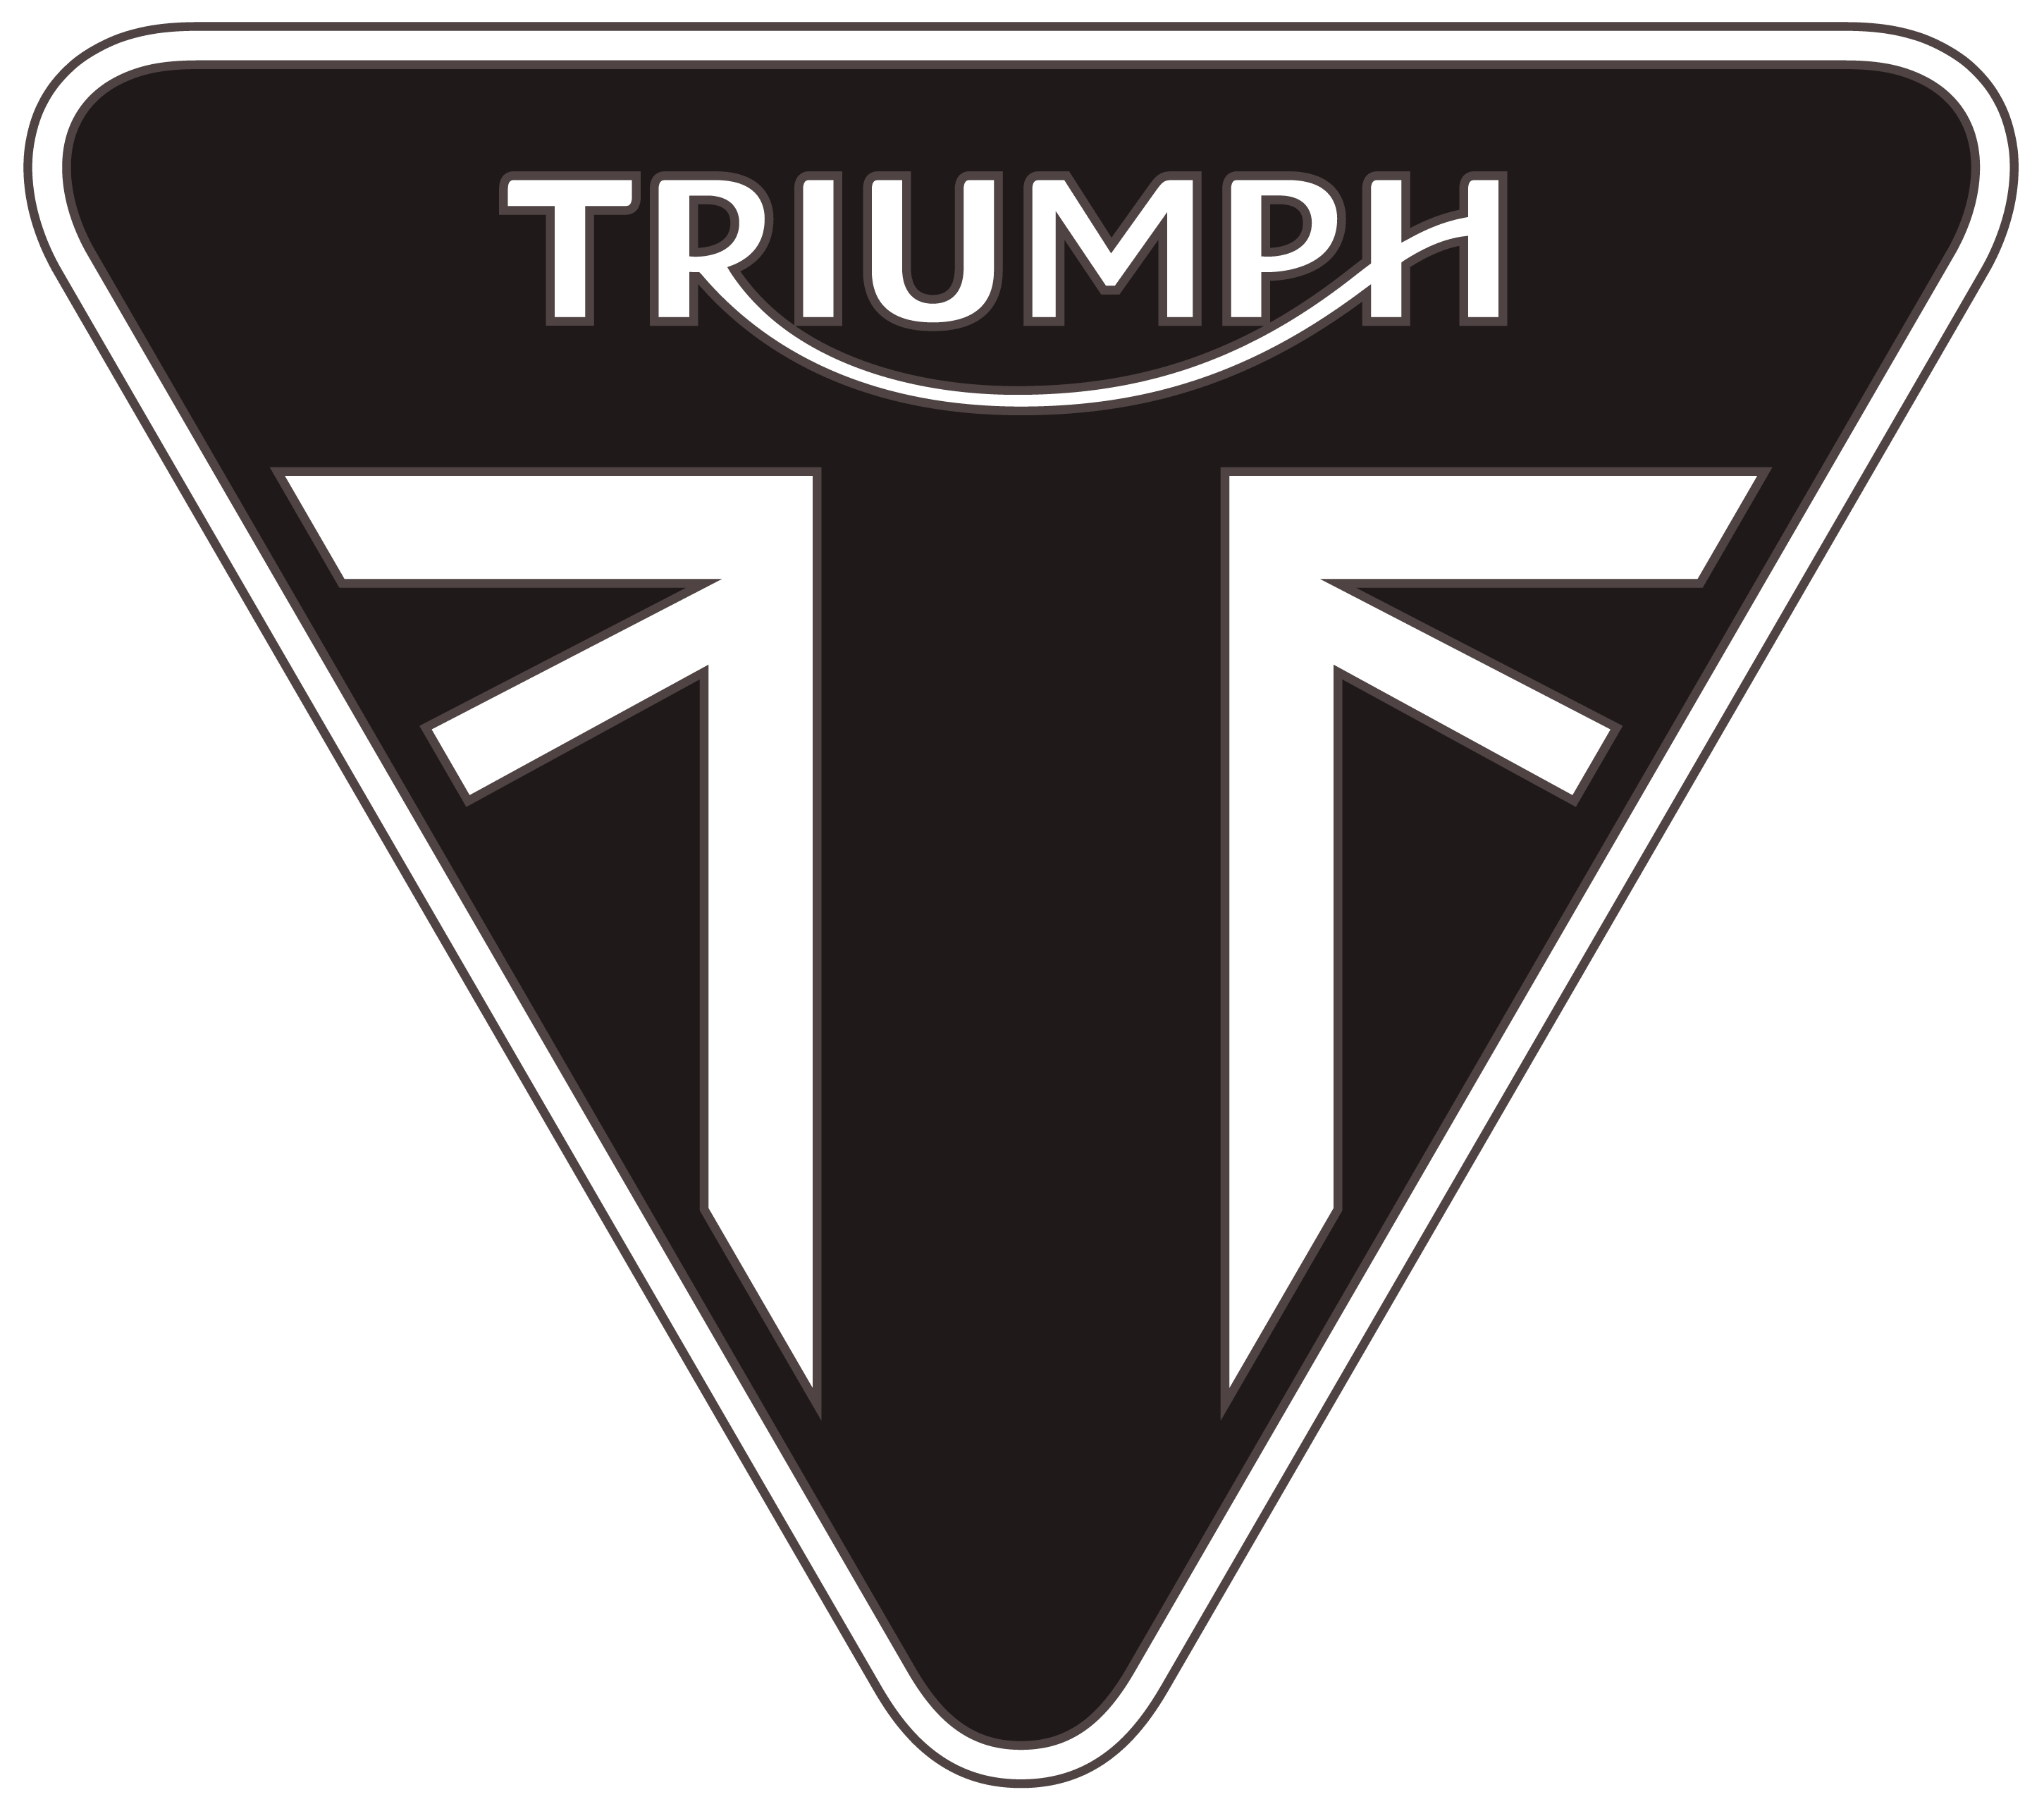 Triumph ECU flash reflash